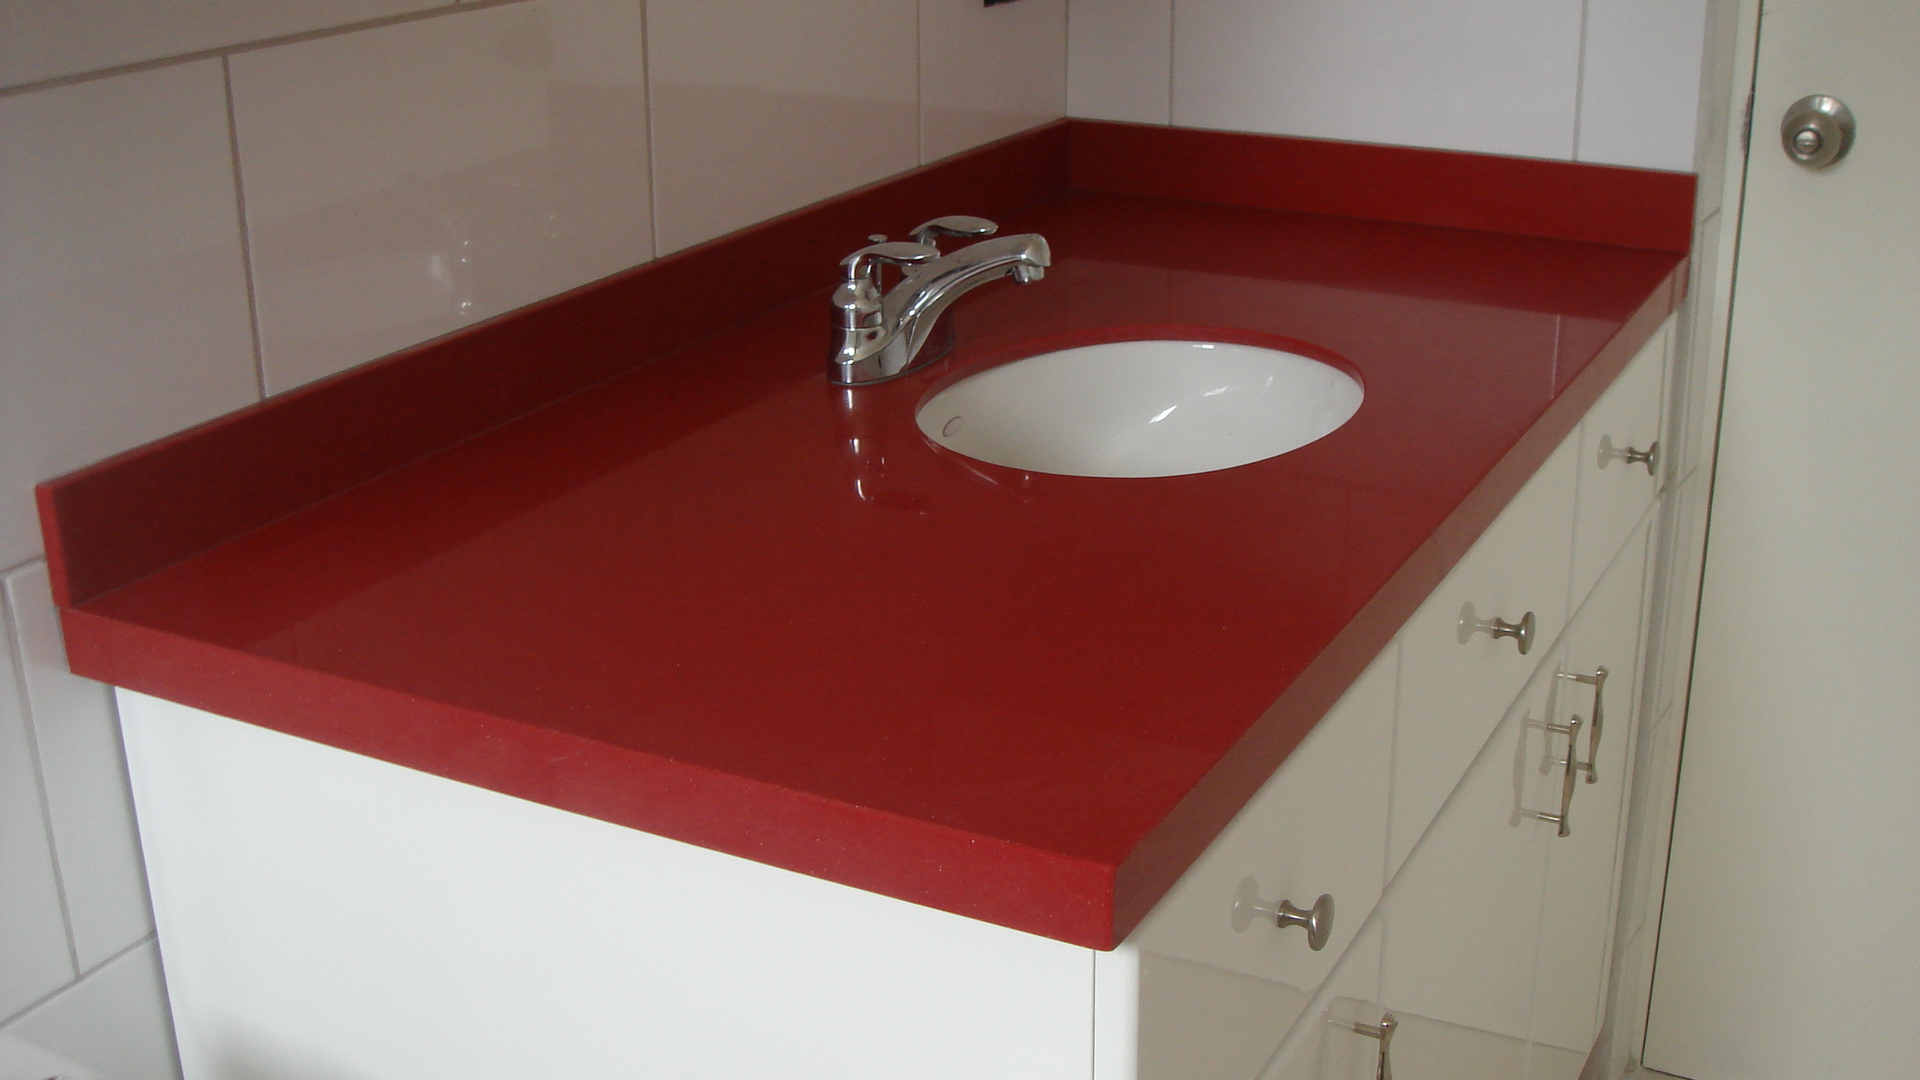 Silestone red eros vanity top with under mounted sink for Silestone kitchen sinks